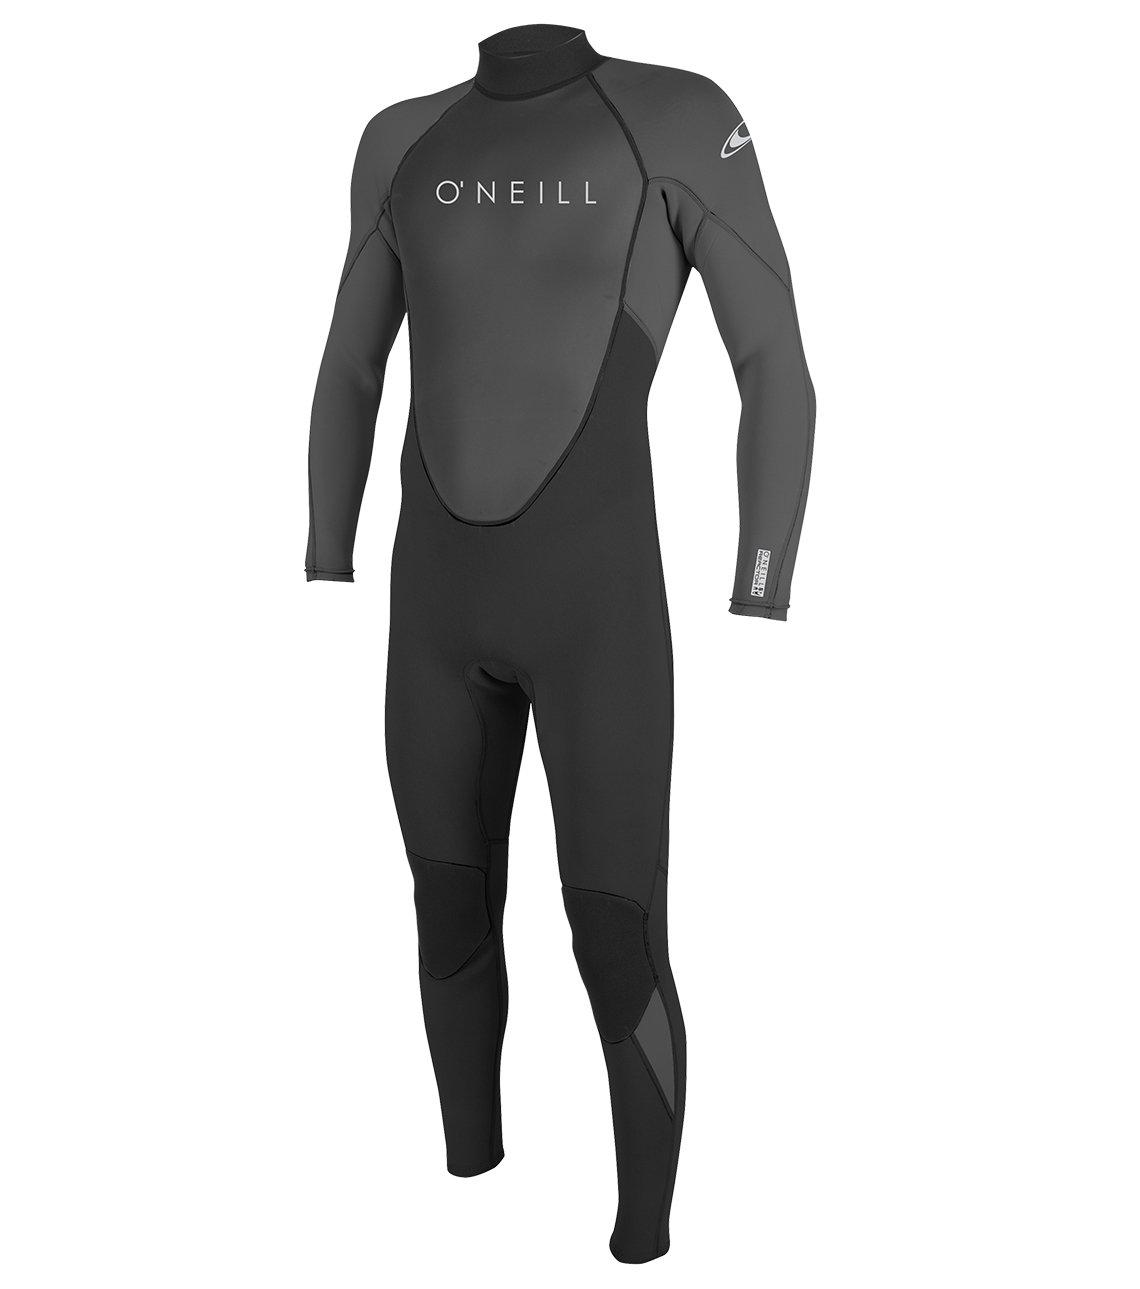 O'Neill Men's Reactor II 3/2mm Back Zip Full Wetsuit, Black/Graphite, Medium Tall